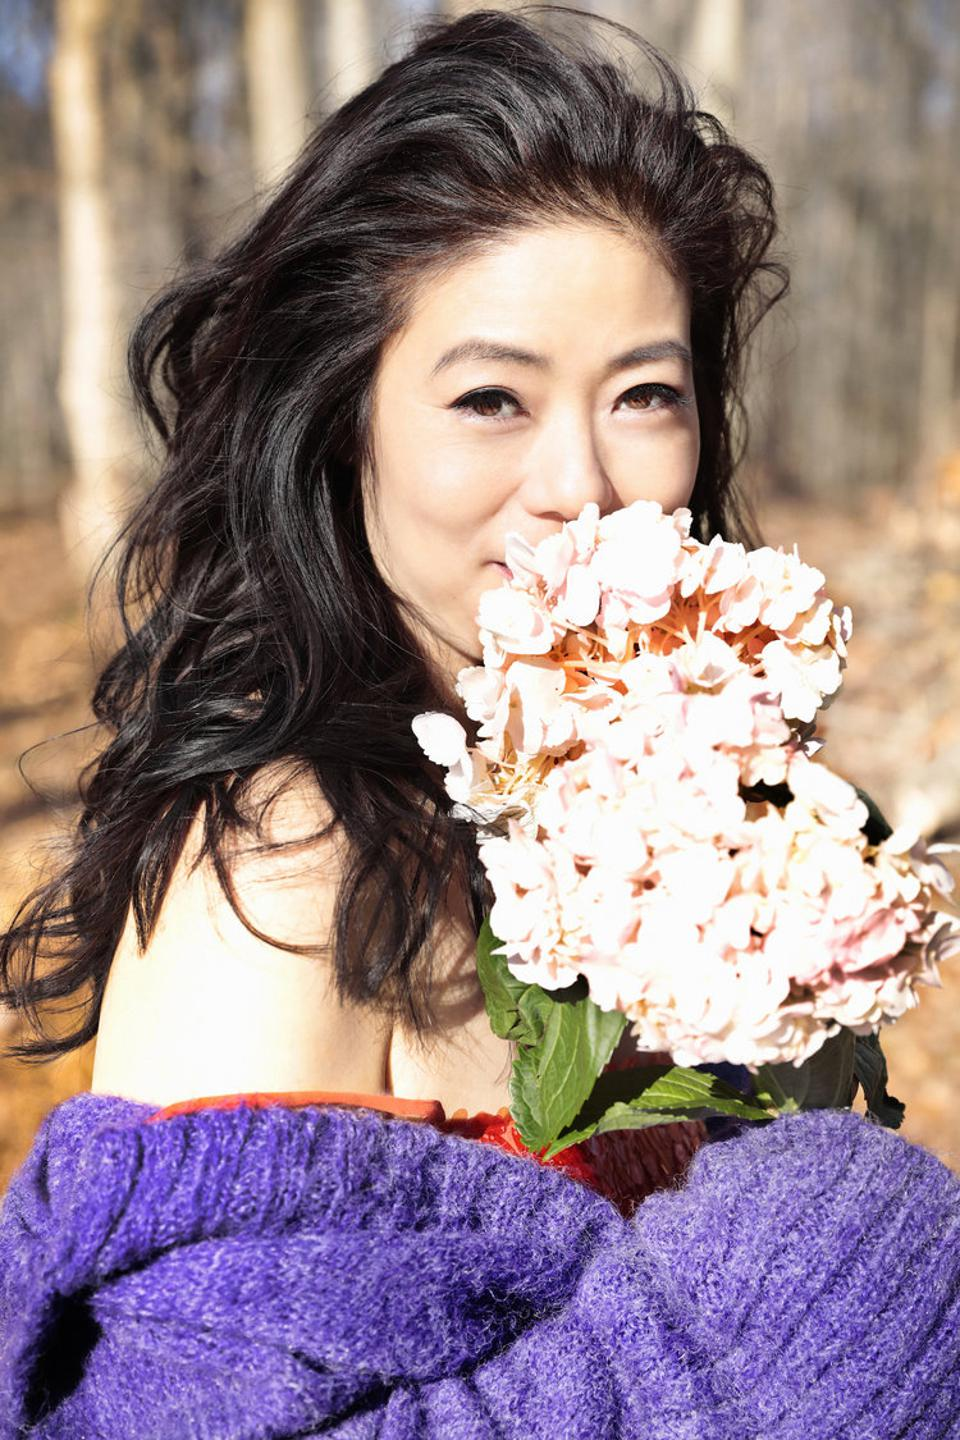 Savor Beauty founder Angela Jia Kim